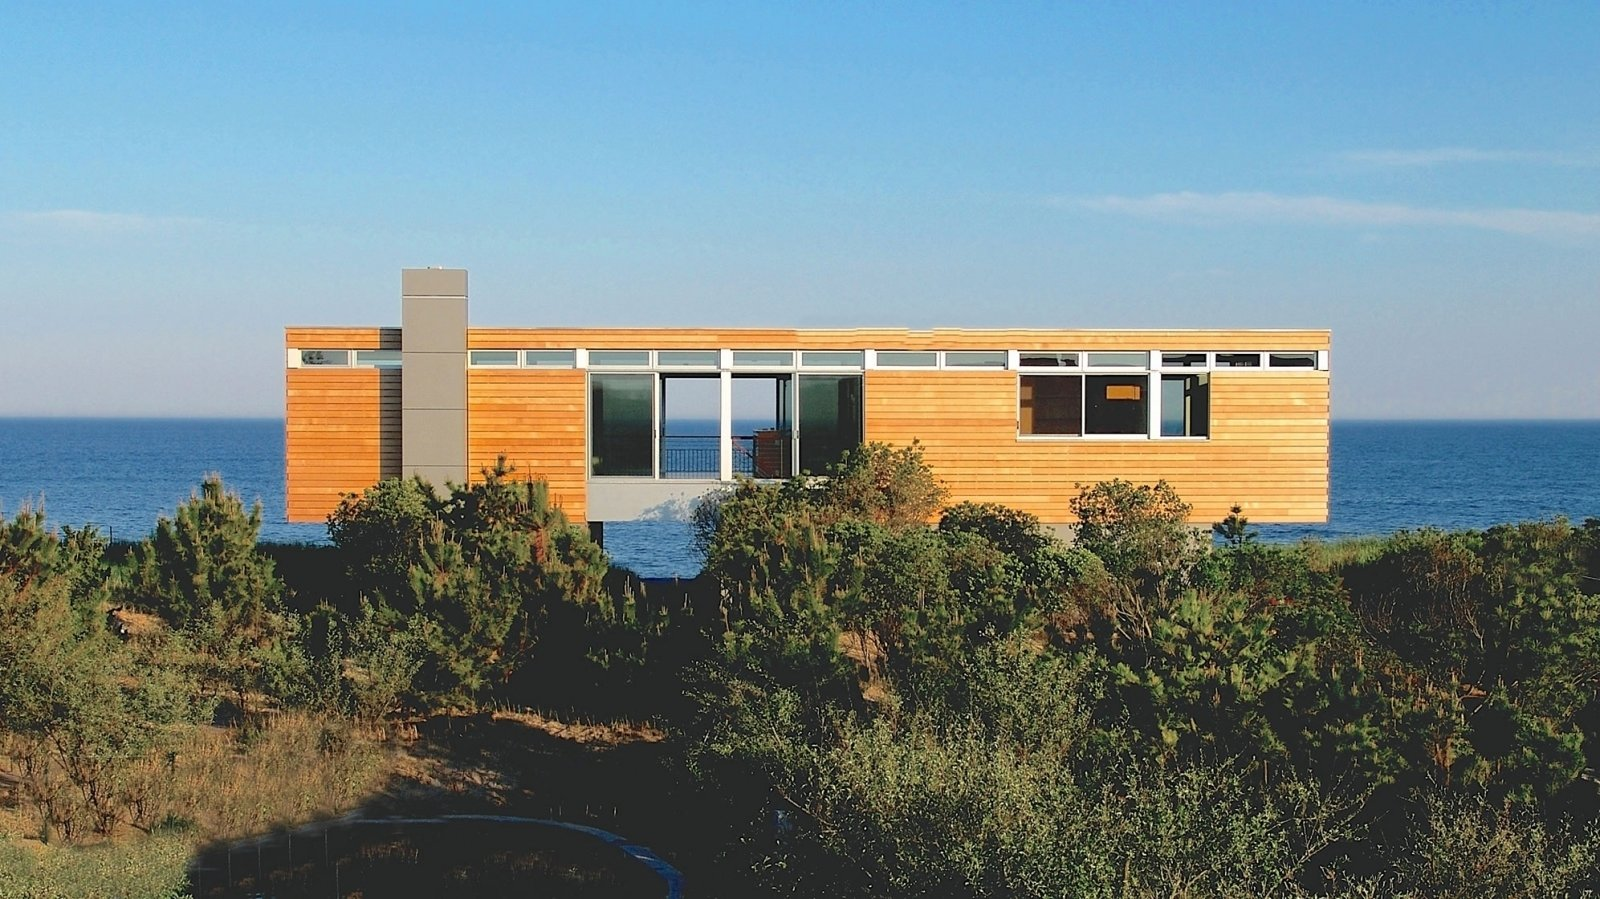 Photo 8 of 9 in Spotlight on Stelle Lomont Rouhani Architects and Their Work in the Hamptons